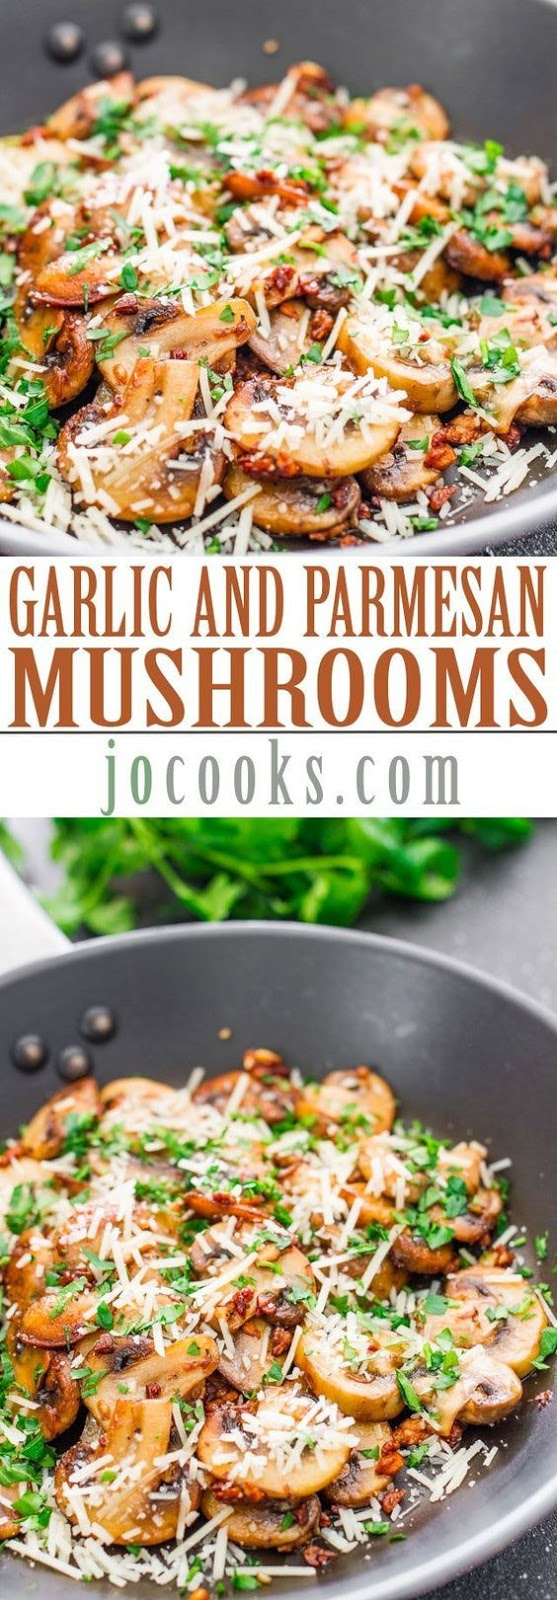 Sauteed Garlic and Parmesan Mushrooms   #DESSERTS #HEALTHYFOOD #EASYRECIPES #DINNER #LAUCH #DELICIOUS #EASY #HOLIDAYS #RECIPE #SPECIALDIET #WORLDCUISINE #CAKE #APPETIZERS #HEALTHYRECIPES #DRINKS #COOKINGMETHOD #ITALIANRECIPES #MEAT #VEGANRECIPES #COOKIES #PASTA #FRUIT #SALAD #SOUPAPPETIZERS #NONALCOHOLICDRINKS #MEALPLANNING #VEGETABLES #SOUP #PASTRY #CHOCOLATE #DAIRY #ALCOHOLICDRINKS #BULGURSALAD #BAKING #SNACKS #BEEFRECIPES #MEATAPPETIZERS #MEXICANRECIPES #BREAD #ASIANRECIPES #SEAFOODAPPETIZERS #MUFFINS #BREAKFASTANDBRUNCH #CONDIMENTS #CUPCAKES #CHEESE #CHICKENRECIPES #PIE #COFFEE #NOBAKEDESSERTS #HEALTHYSNACKS #SEAFOOD #GRAIN #LUNCHESDINNERS #MEXICAN #QUICKBREAD #LIQUOR